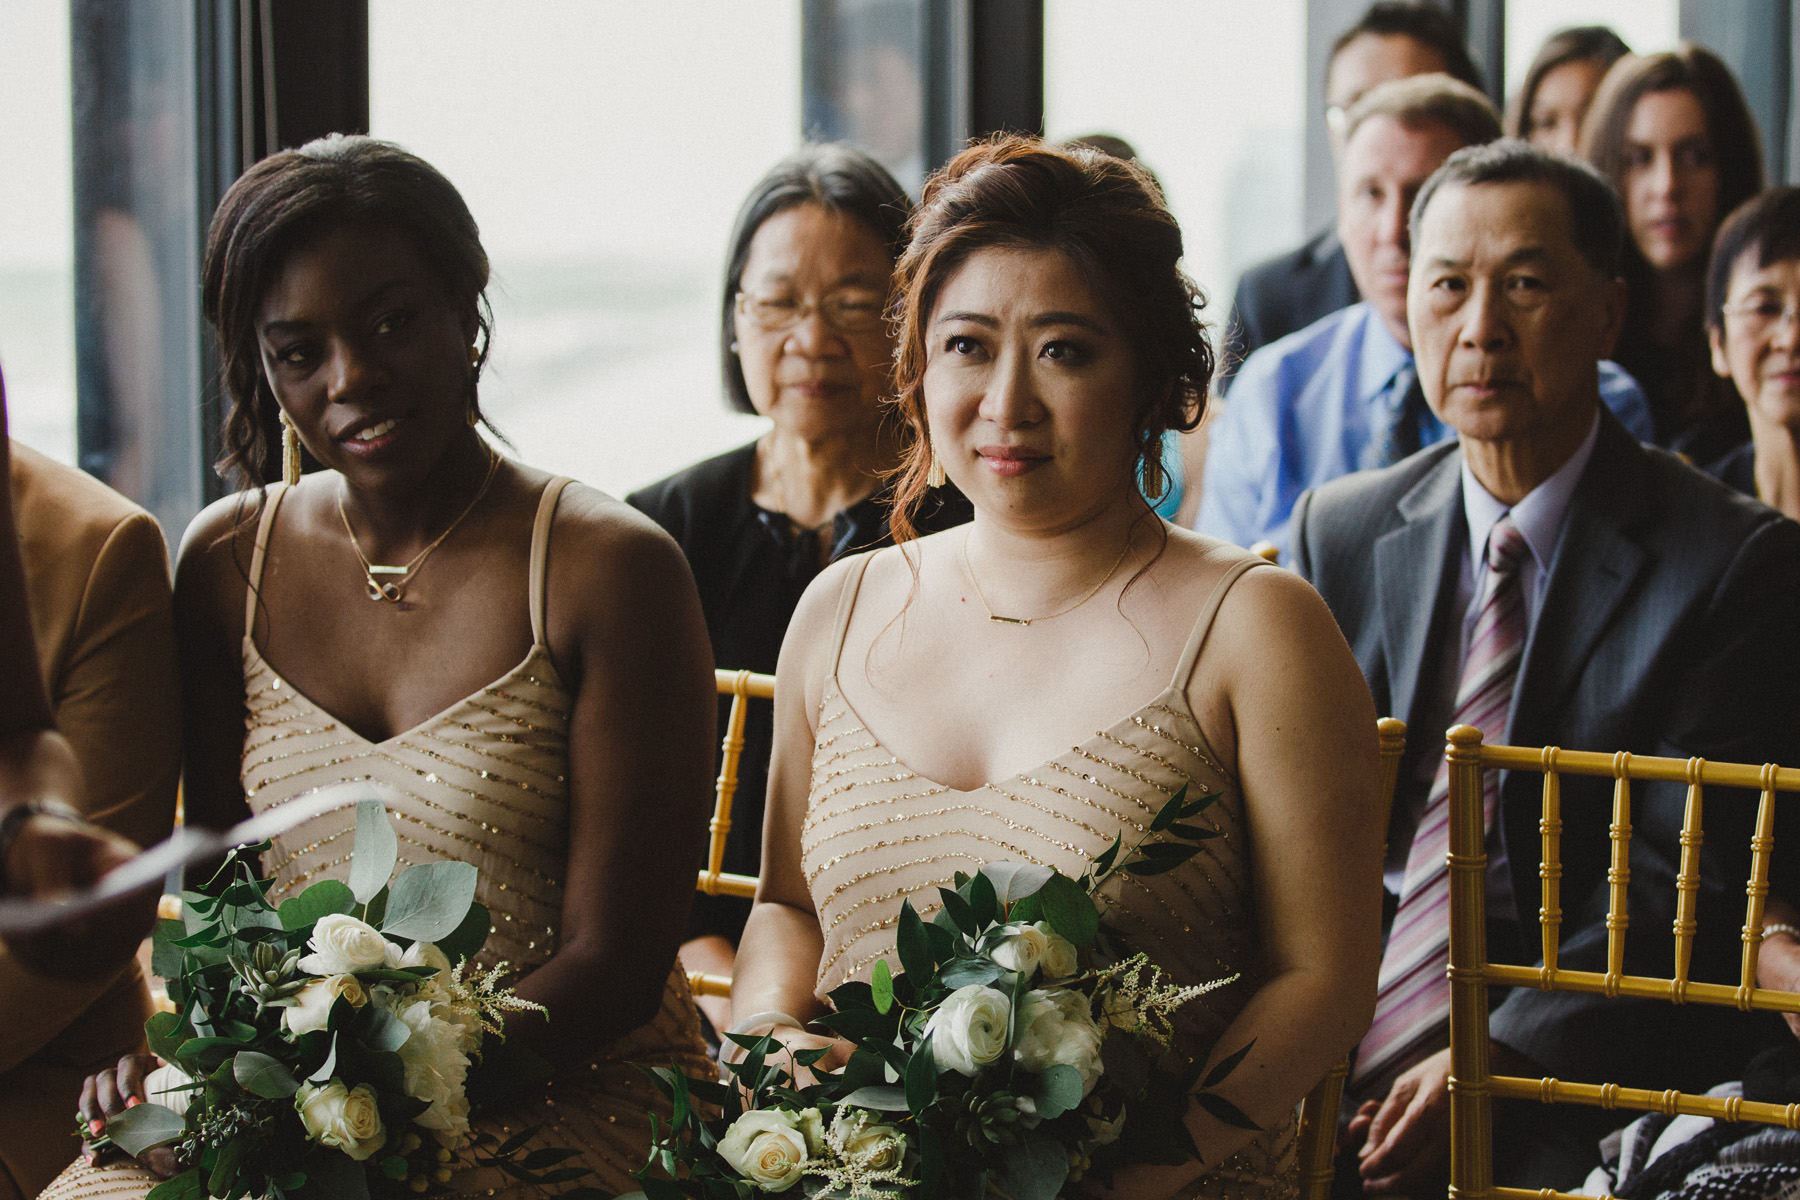 Canoe Restaurant Wedding Pictures by Toronto Top Wedding Photographer Avangard Photography Studio